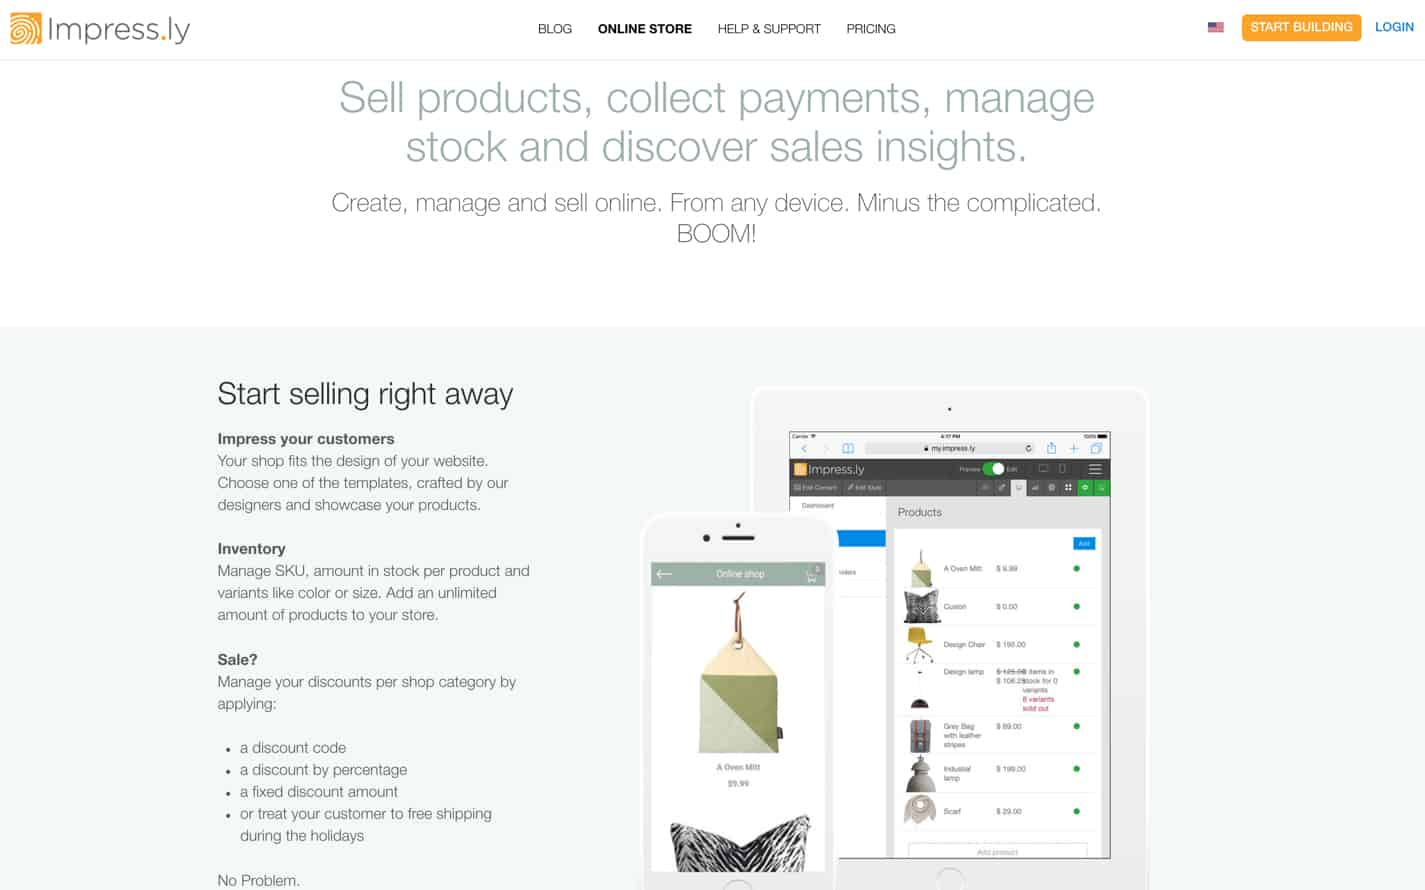 Impress.ly review